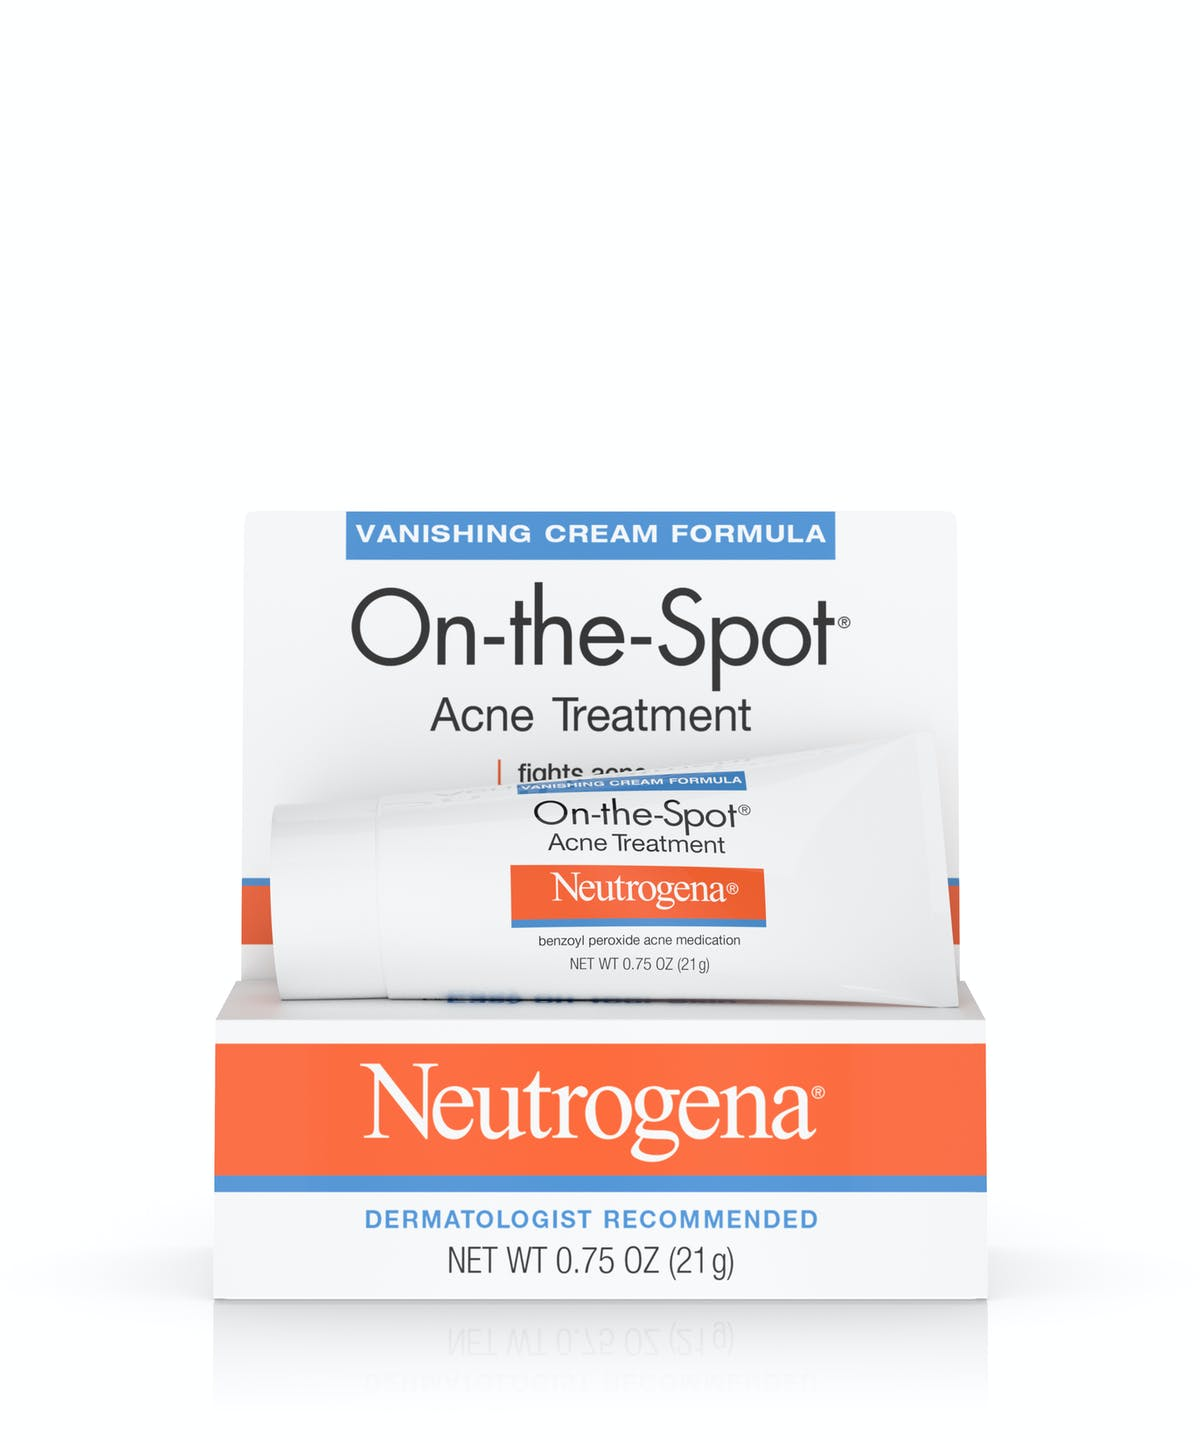 On The Spot Acne Treatment Neutrogena